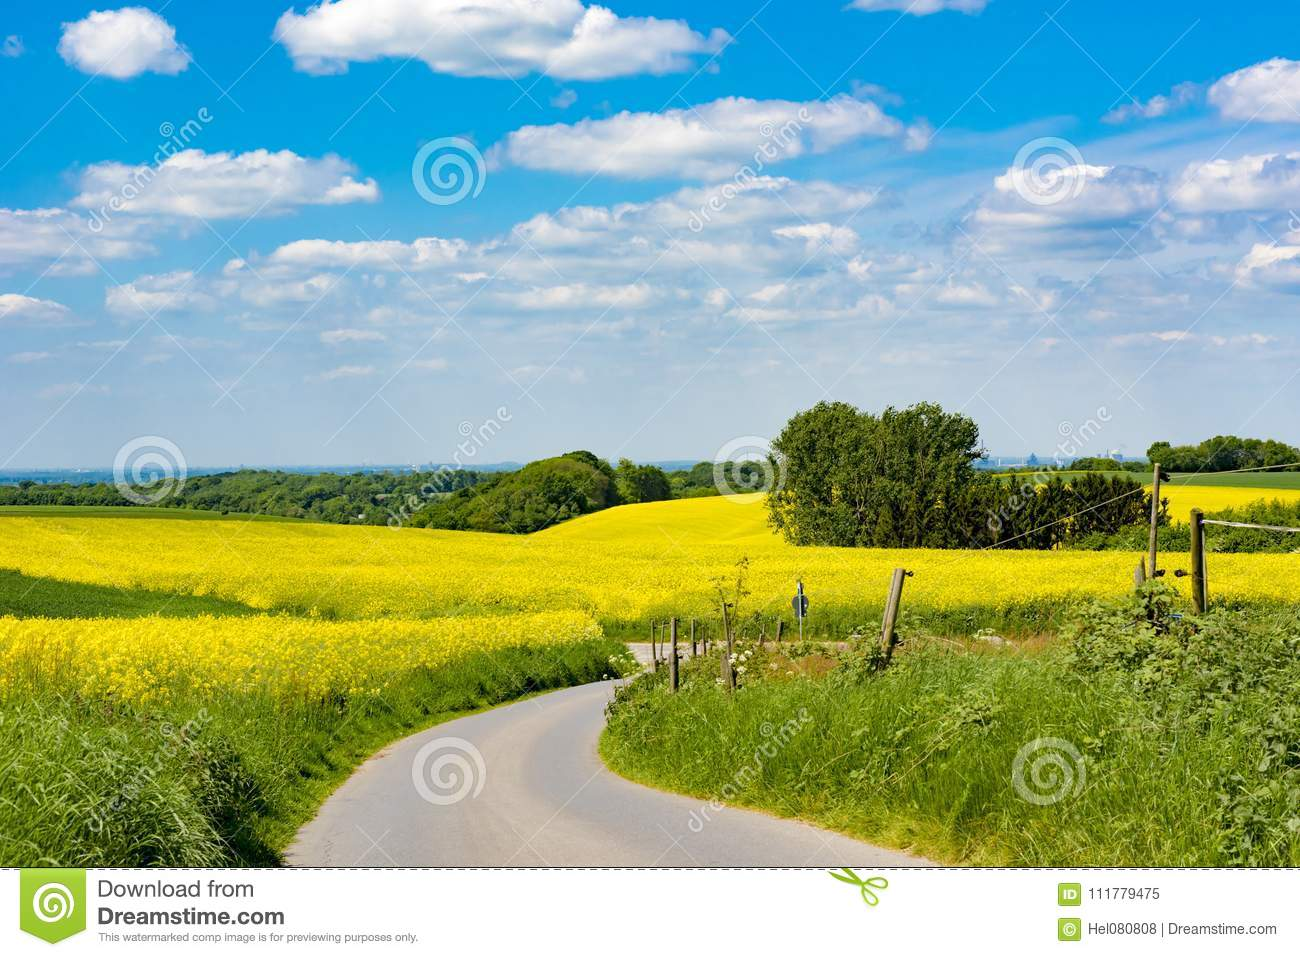 Agrarian fields, curved path, rural landscape, spring season, flowering yellow canola, blue sky